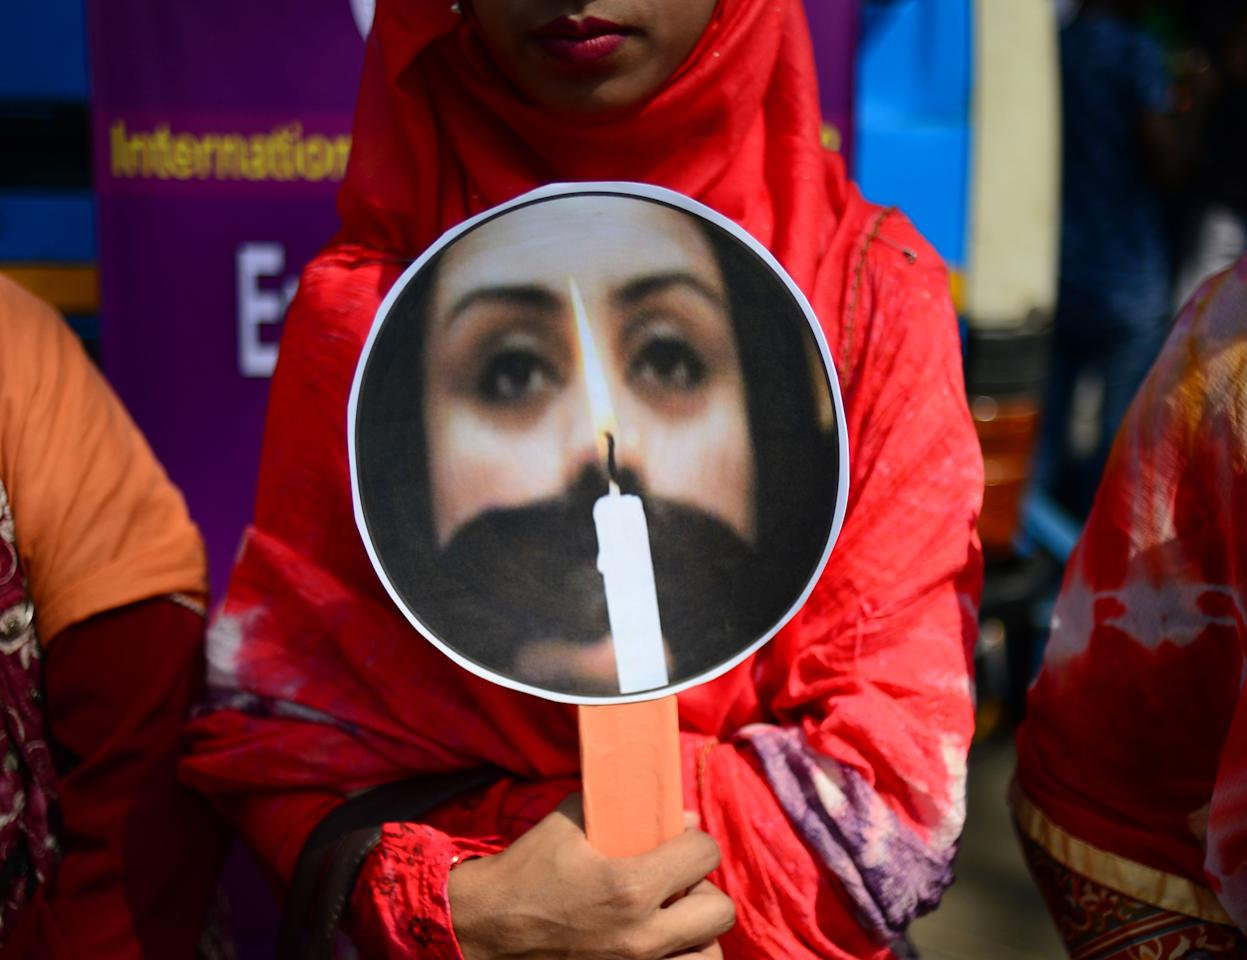 <p>A Bangladeshi woman holding a placard takes part in a rally to mark International Women's Day in Dhaka on March 8, 2018. Thousands of Bangladeshi women, nongovernmental organizations, and rights groups activists took to the streets, demanding safer lives for women in the country as well as an improvement in their social conditions. (Photo: Munir Uz Zaman/AFP/Getty Images) </p>